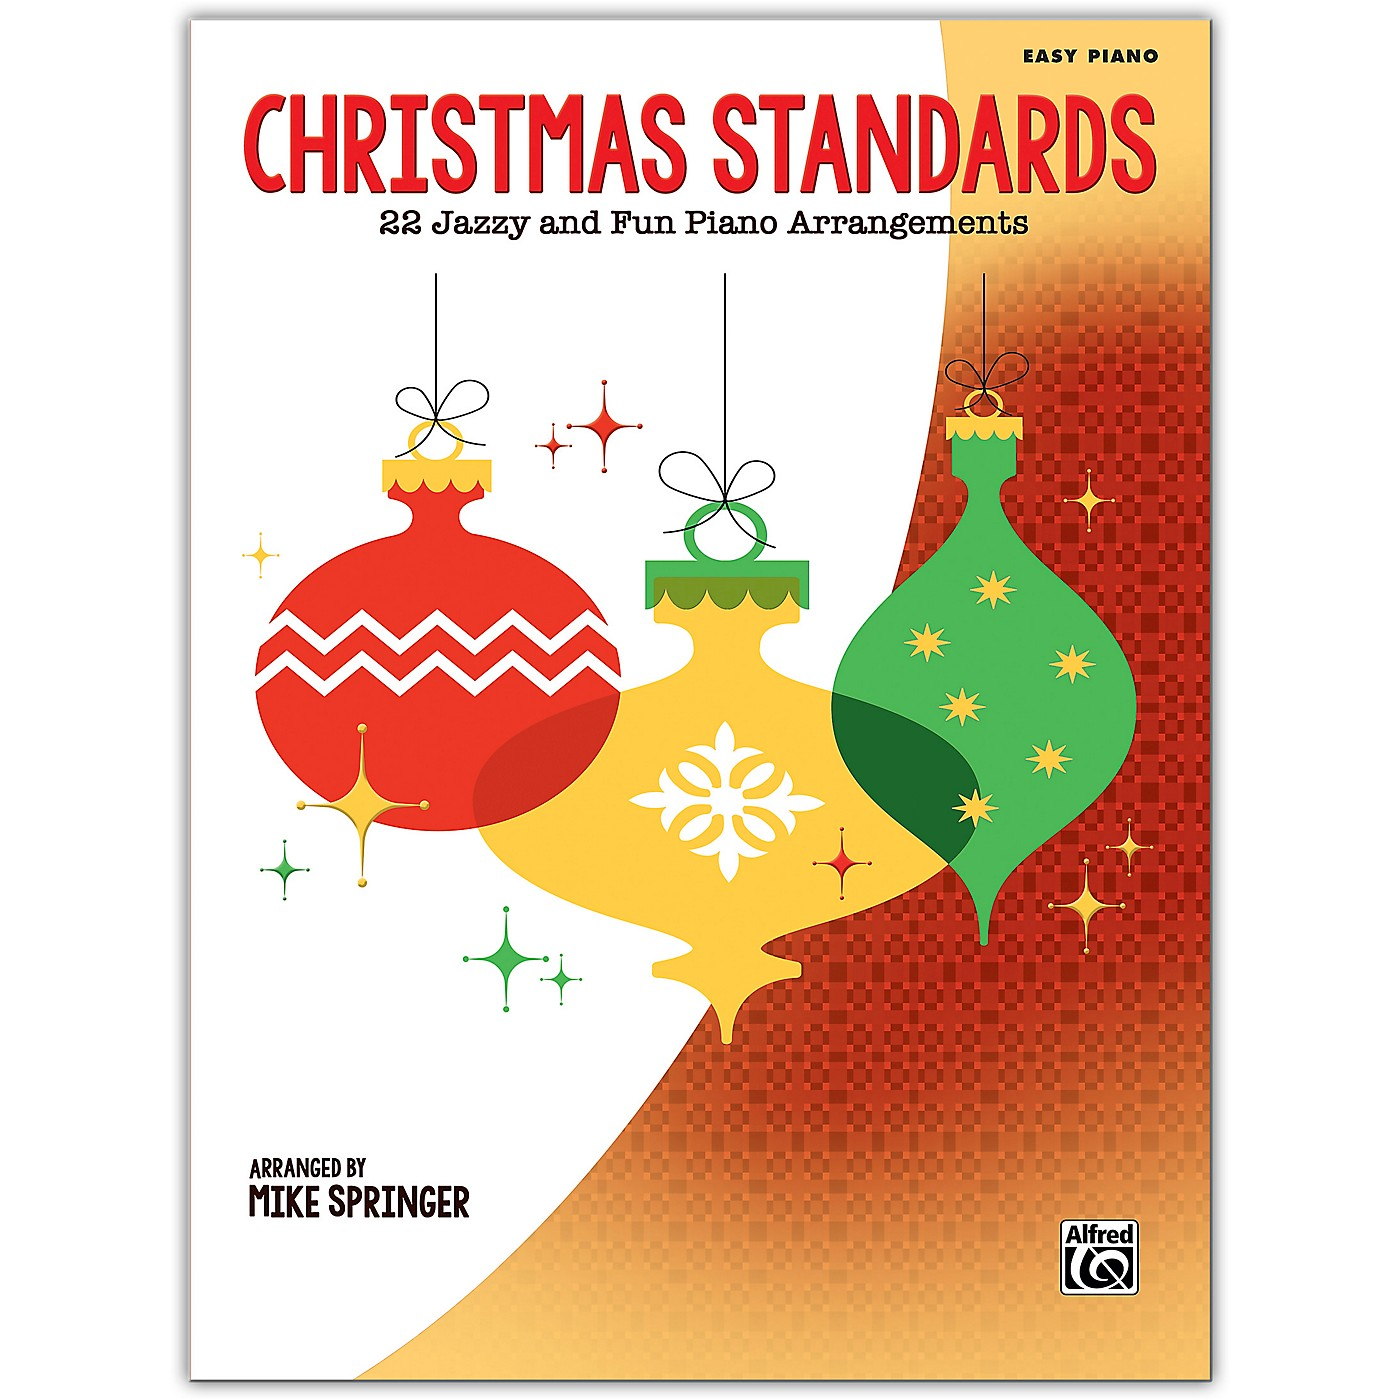 Alfred Christmas Standards Easy Piano thumbnail